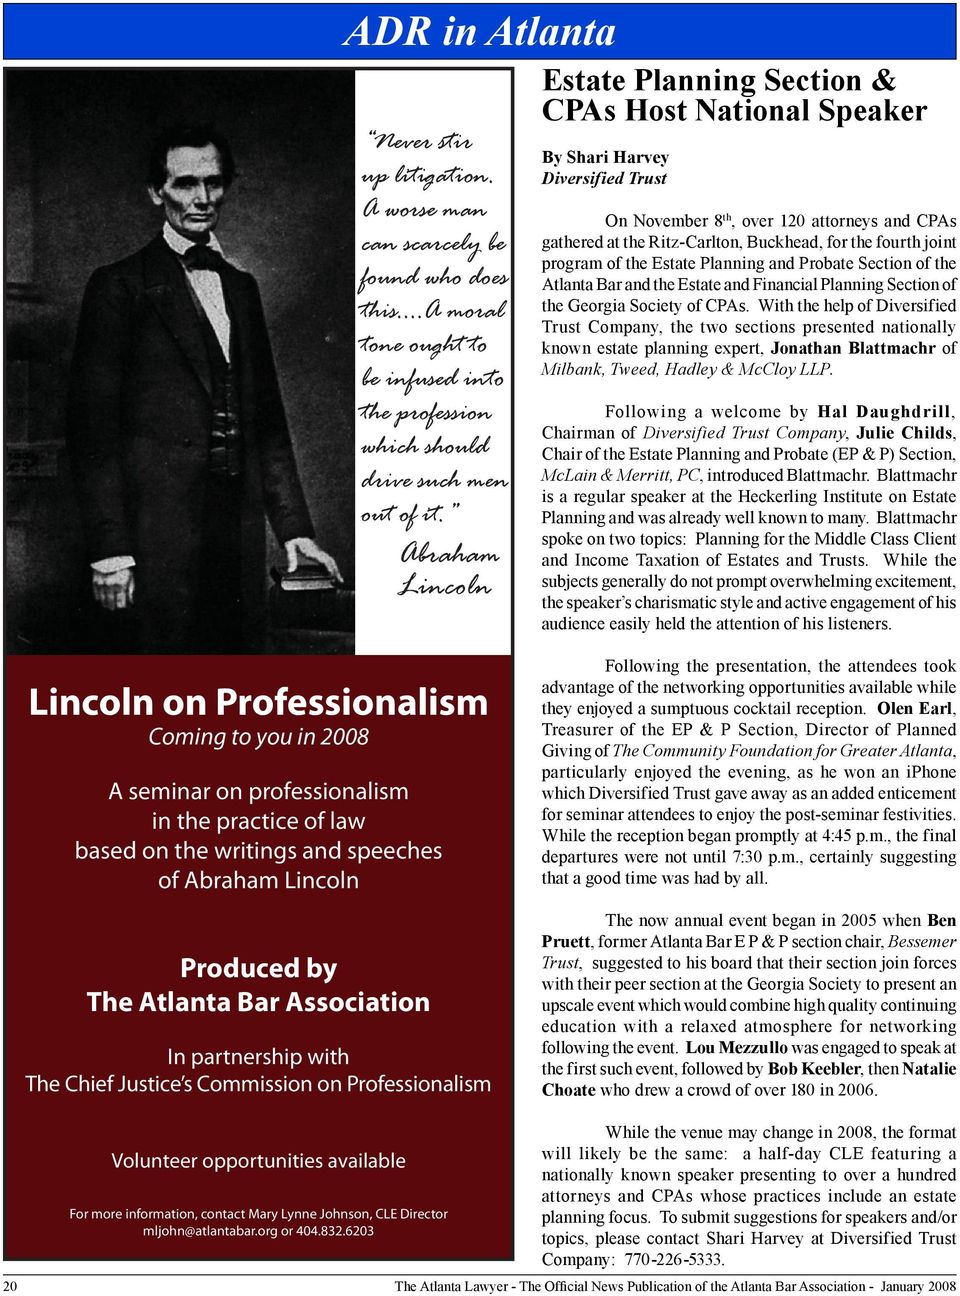 Abraham Lincoln CPAs Host National Speaker By Shari Harvey Diversified Trust On November 8 th, over 120 attorneys and CPAs gathered at the Ritz-Carlton, Buckhead, for the fourth joint program of the